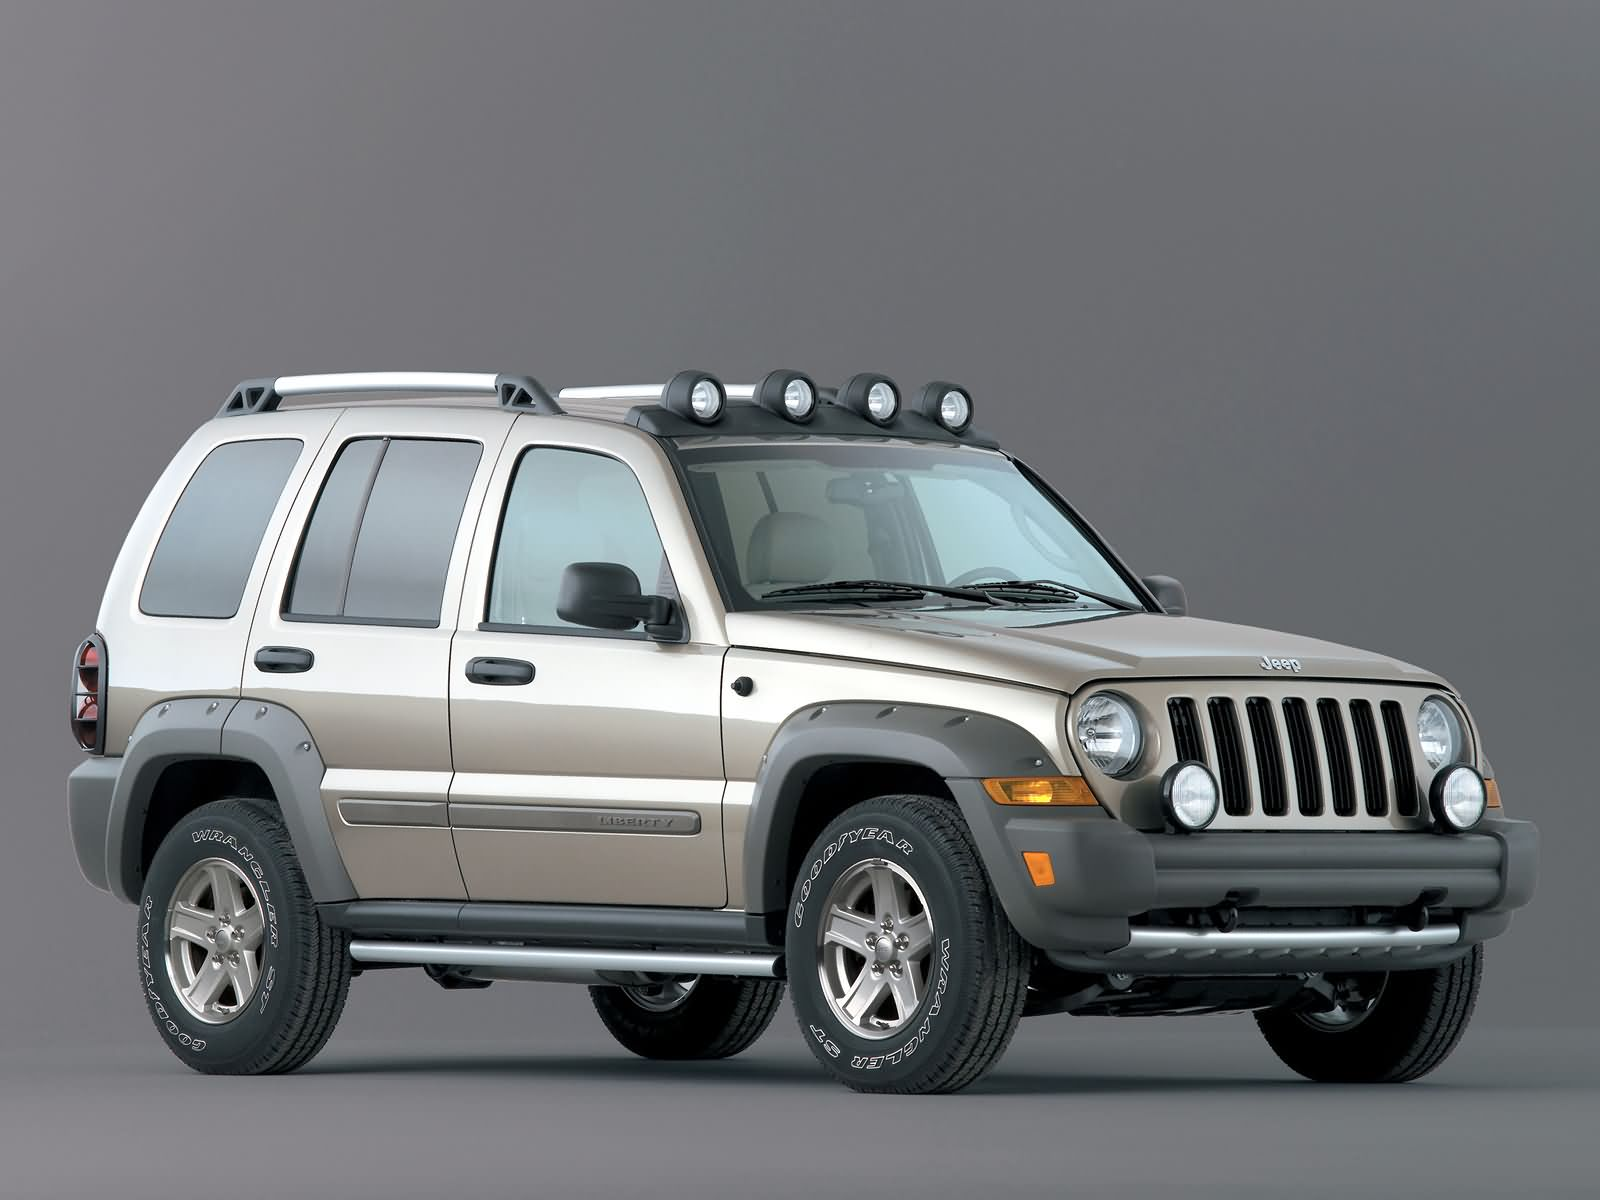 Jeep Liberty photo 7854